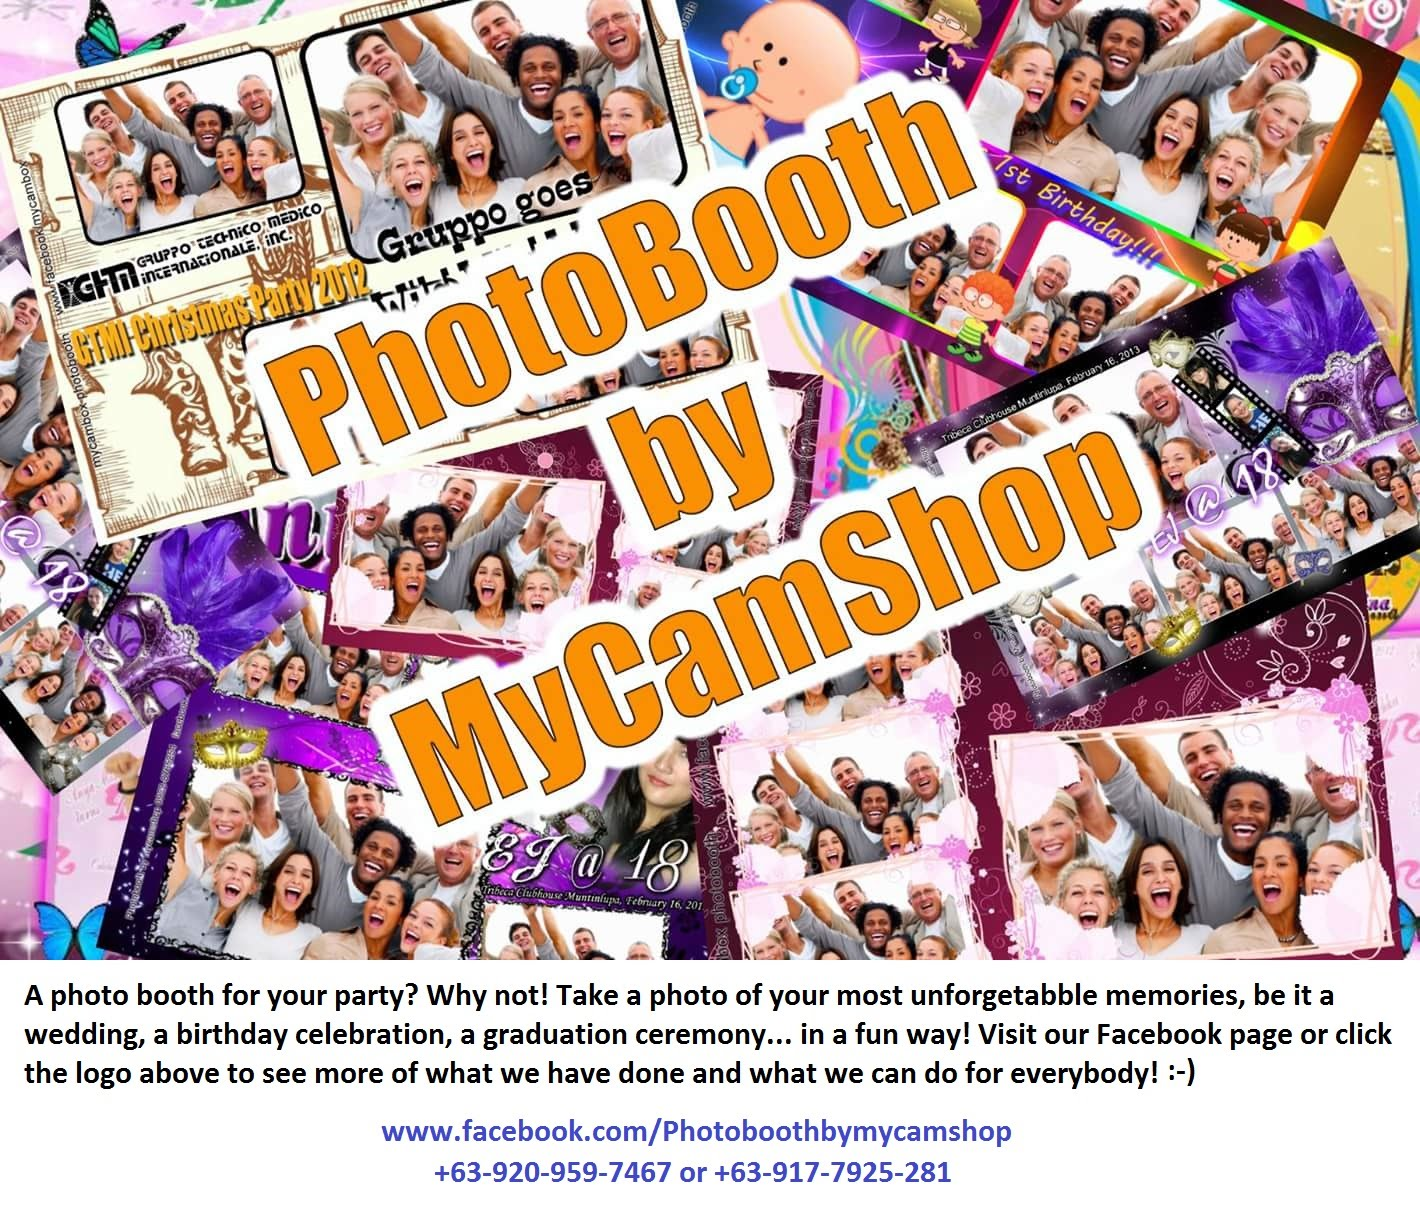 www.facebook.com/Photoboothbymycamshop